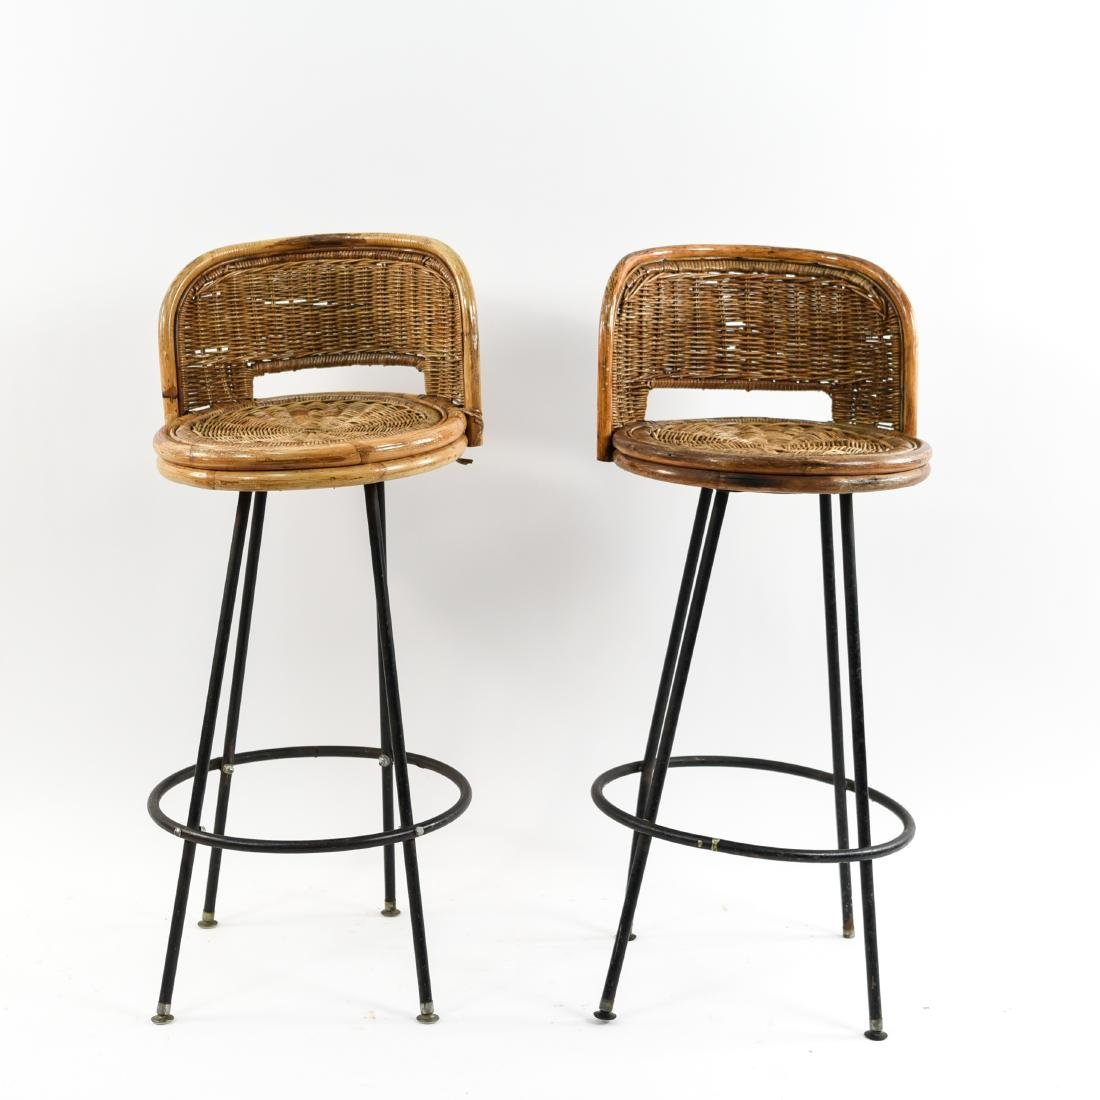 PAIR OF WICKER & IRON BAR STOOLS